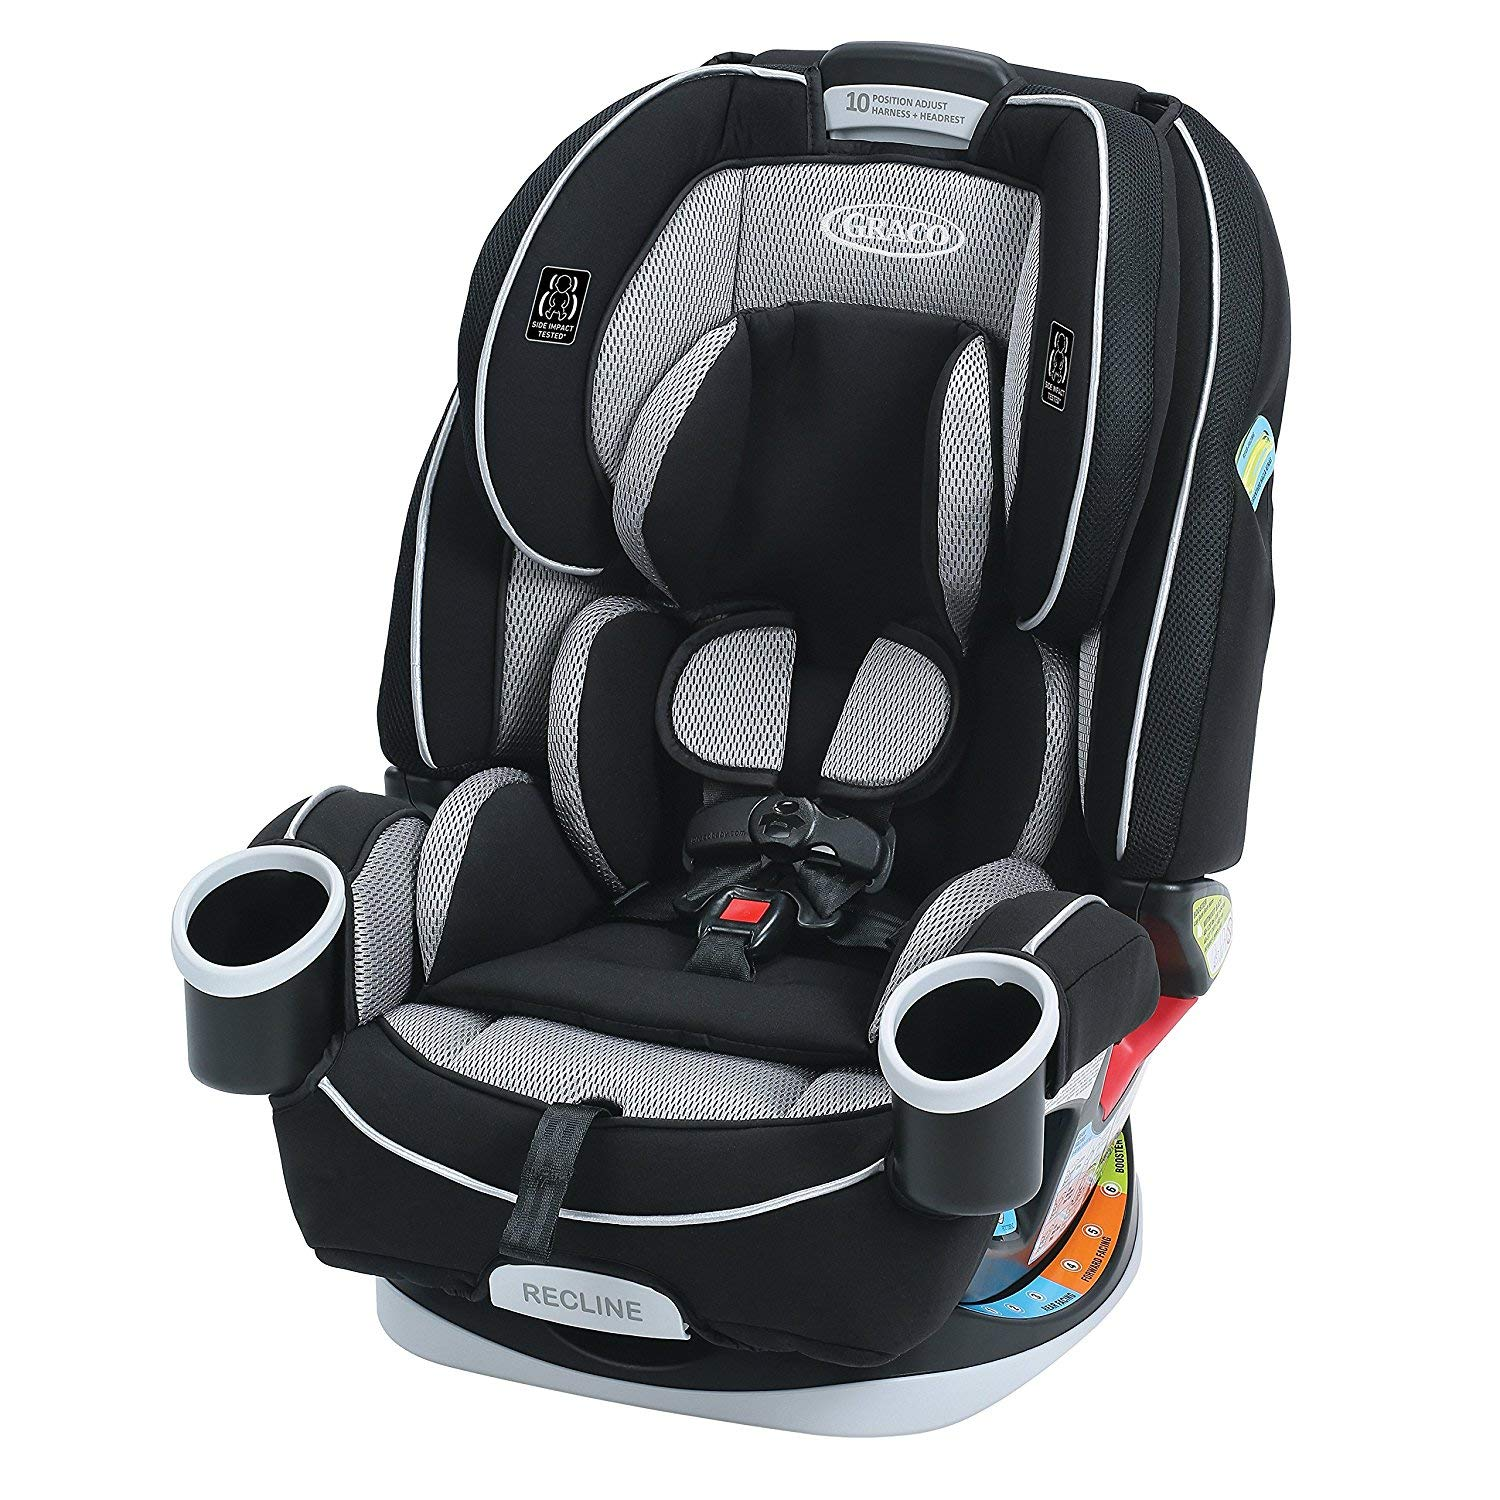 Graco 4Ever 4 in 1 Convertible Car Seat | Infant to Toddler Car Seat, with 10 Years of Use, Matrix